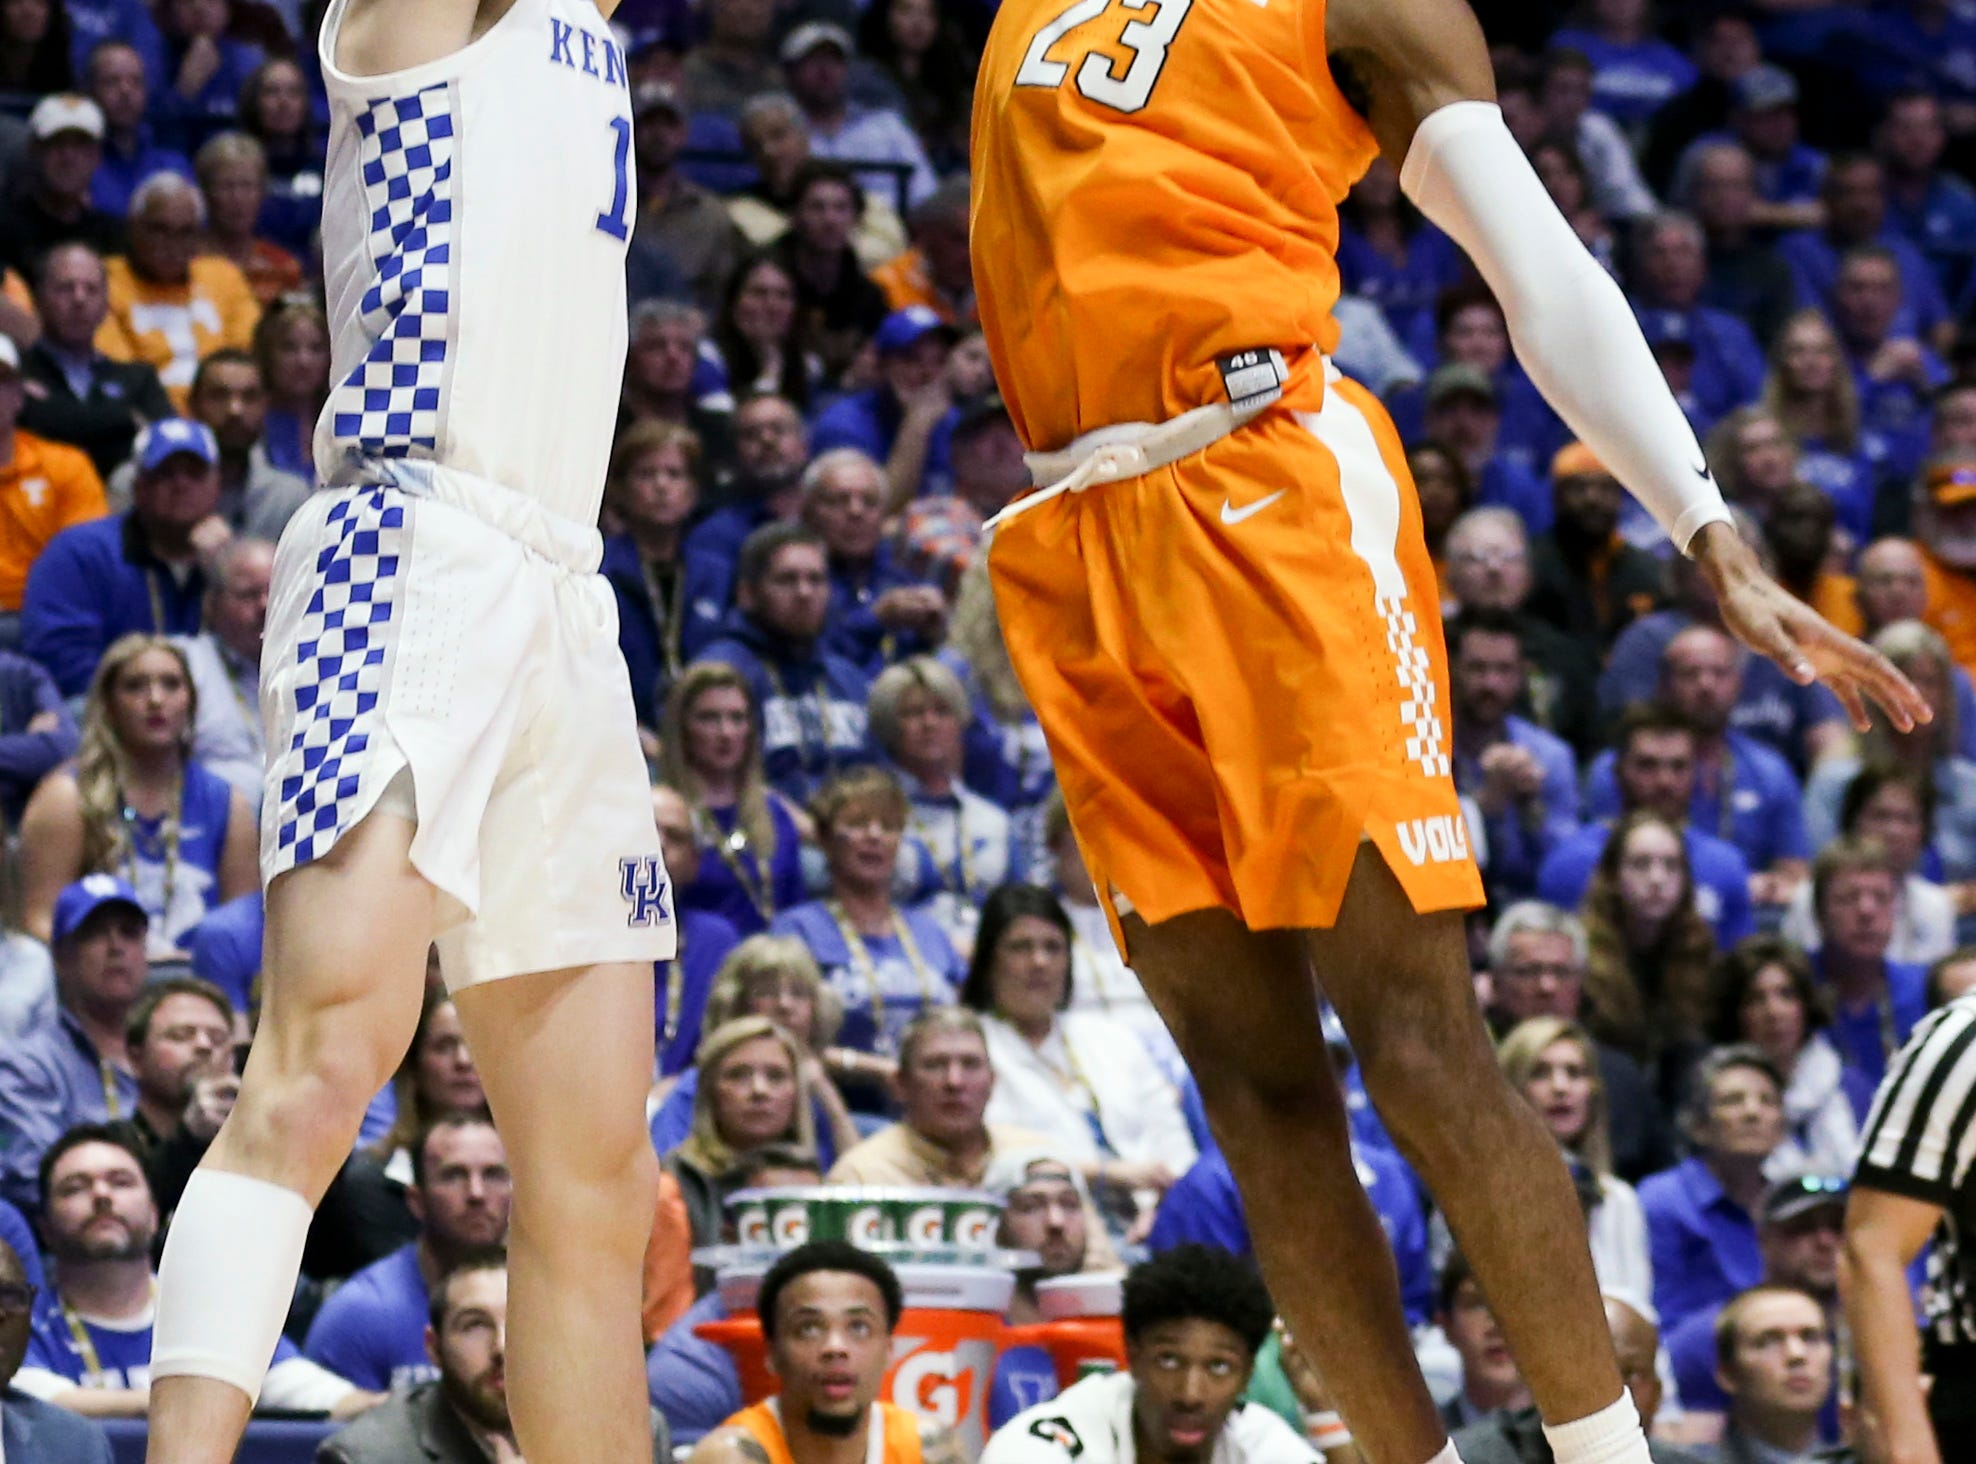 Tennessee guard Jordan Bowden (23) defends against Kentucky guard Tyler Herro (14) during the first half of the SEC Men's Basketball Tournament semifinal game at Bridgestone Arena in Nashville, Tenn., Saturday, March 16, 2019.